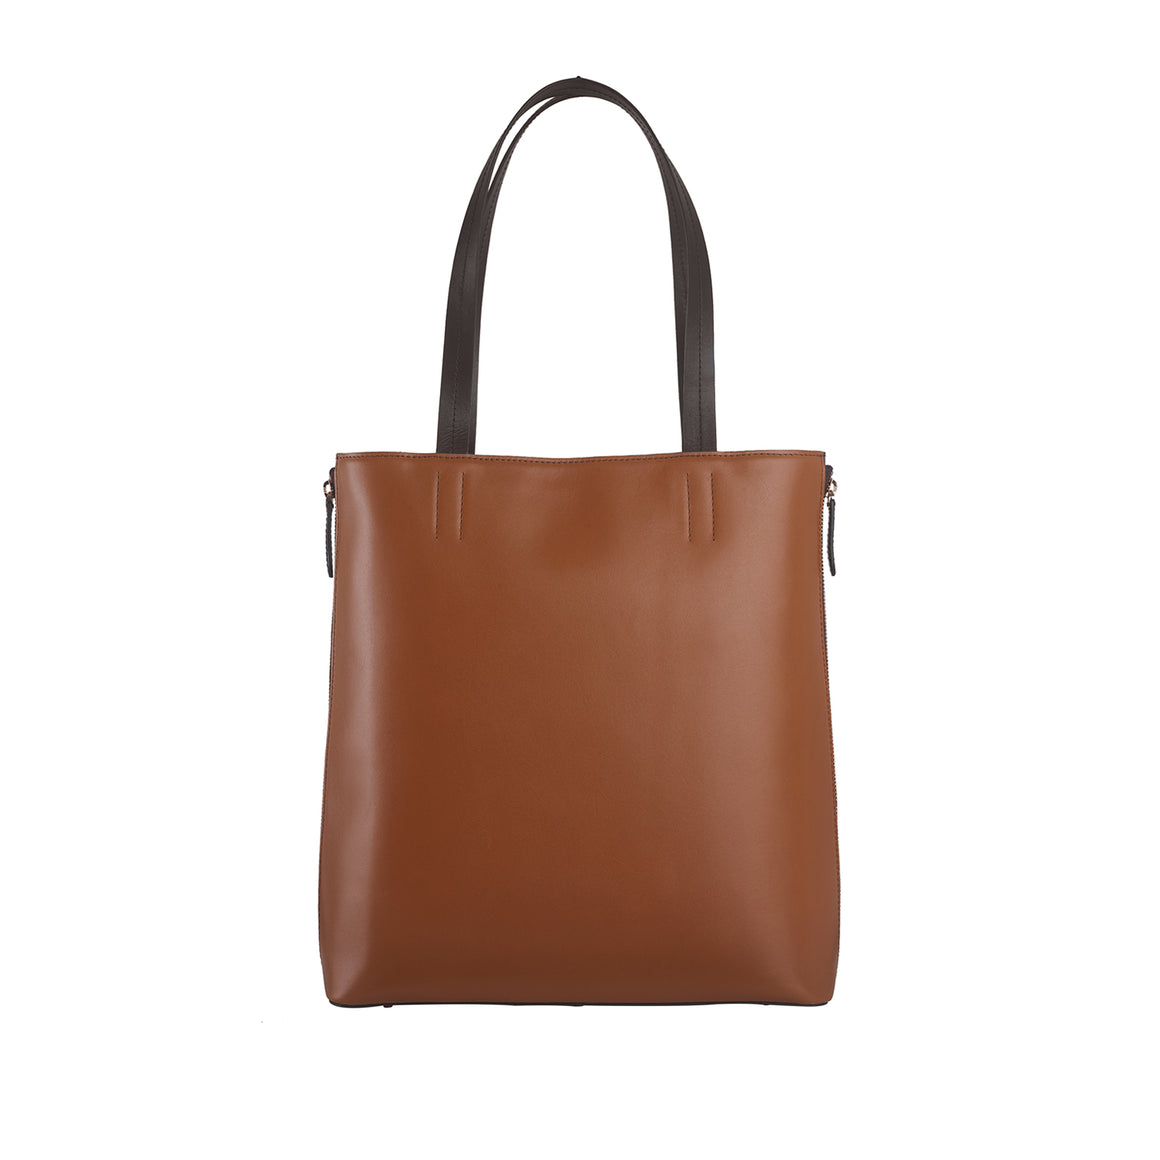 SB 0005 - TOHL CARLISLE WOMEN'S DAY SHOPPER - MOCHA